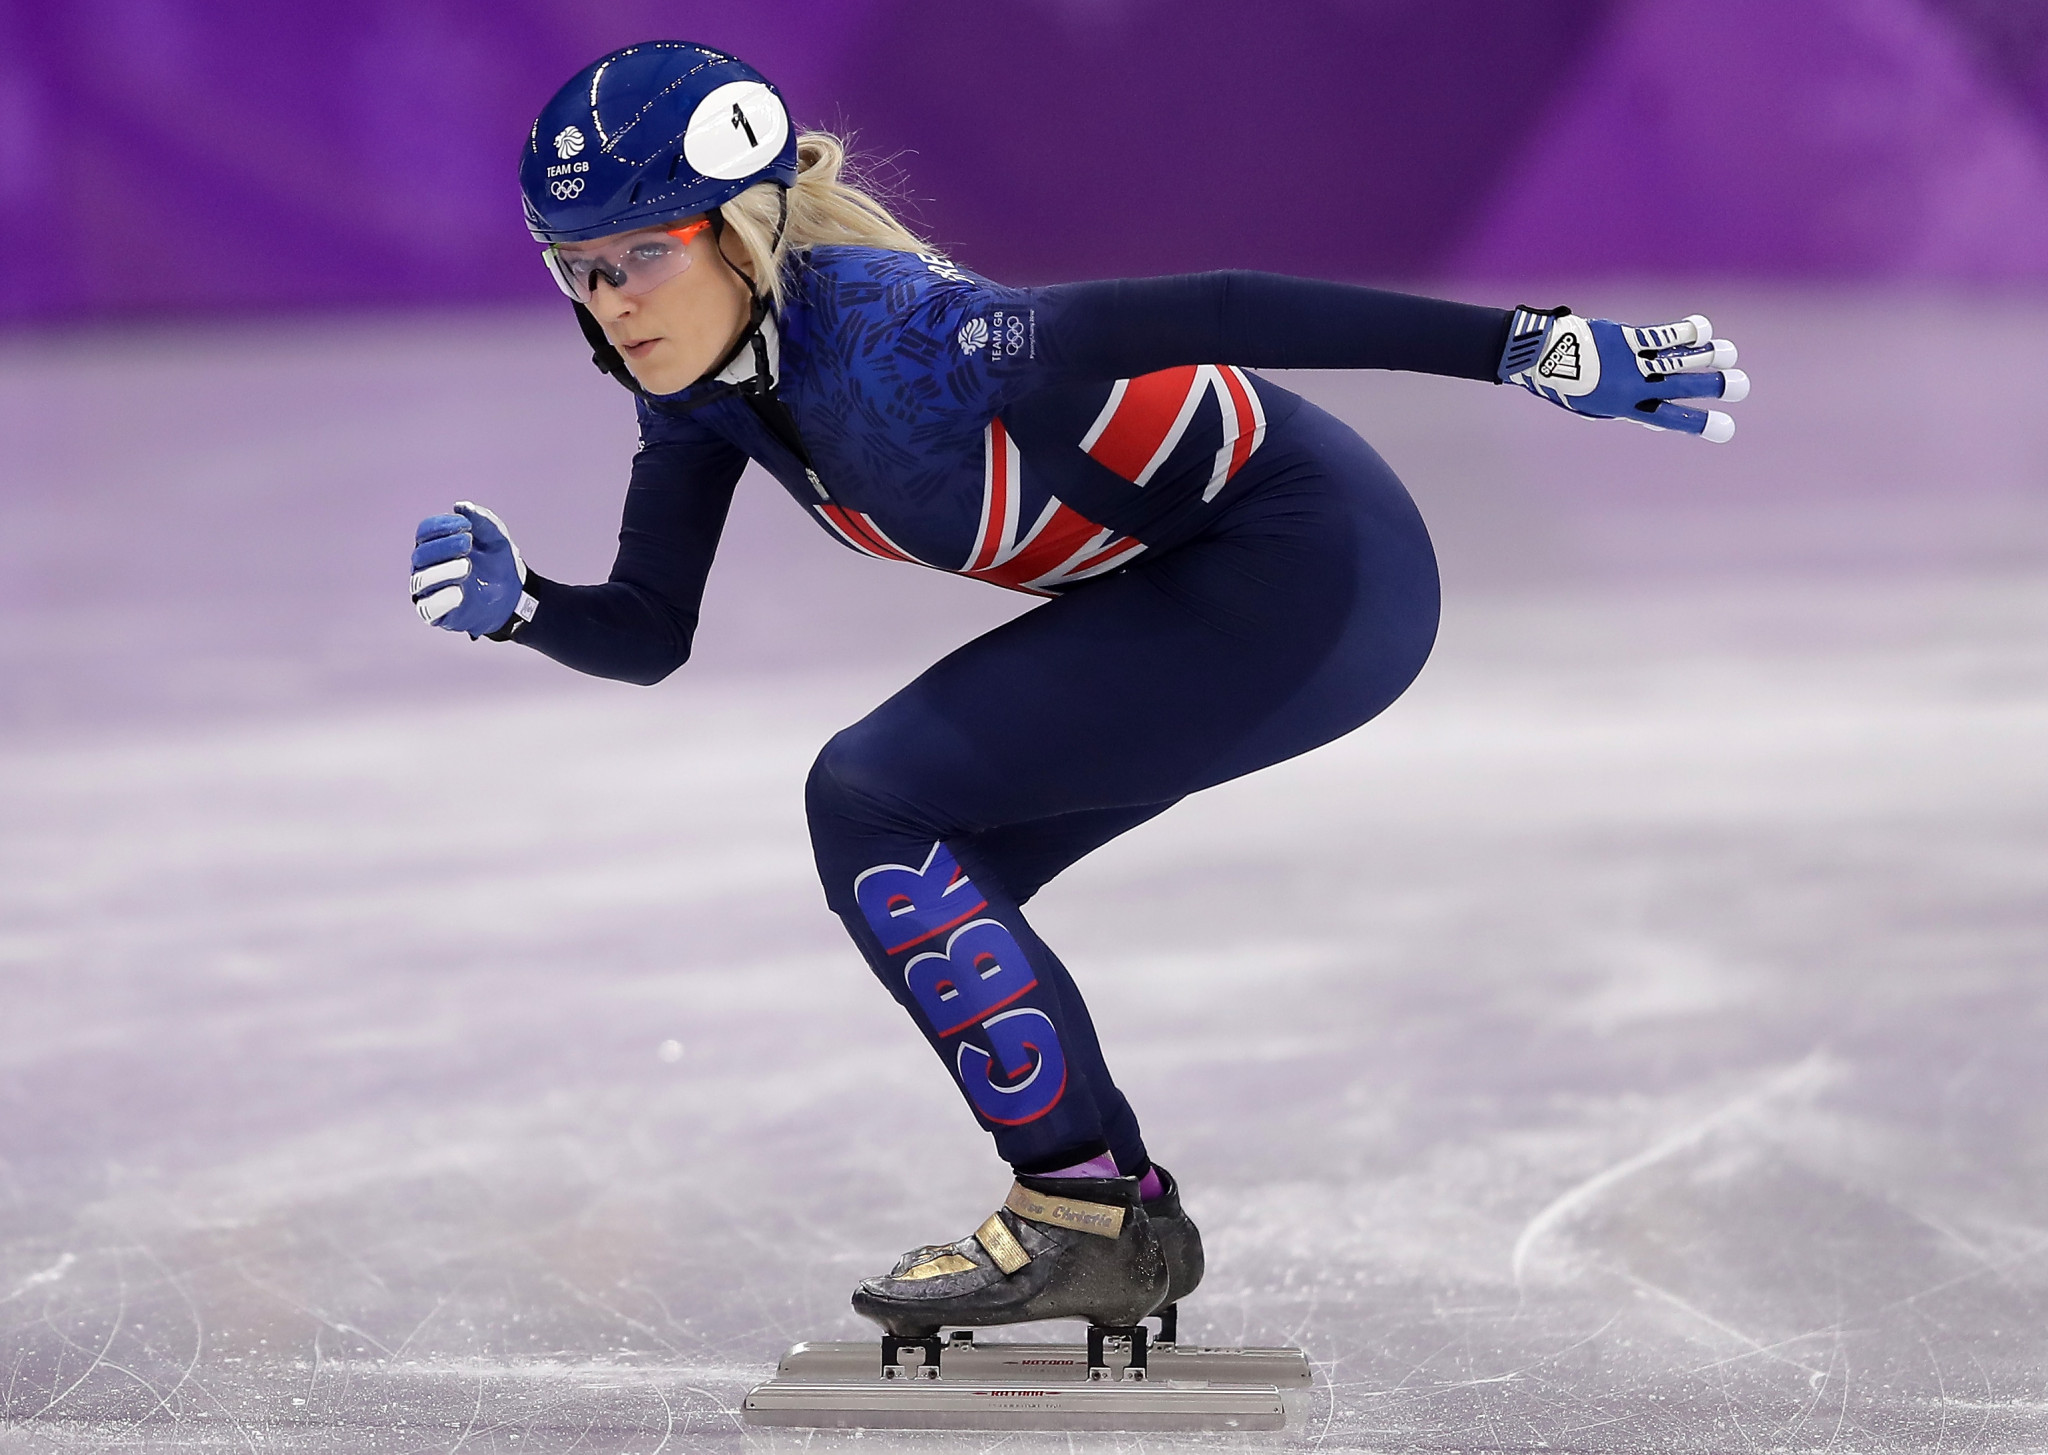 Former world champion Elise Christie among 12 selected for British short track speed skating squads